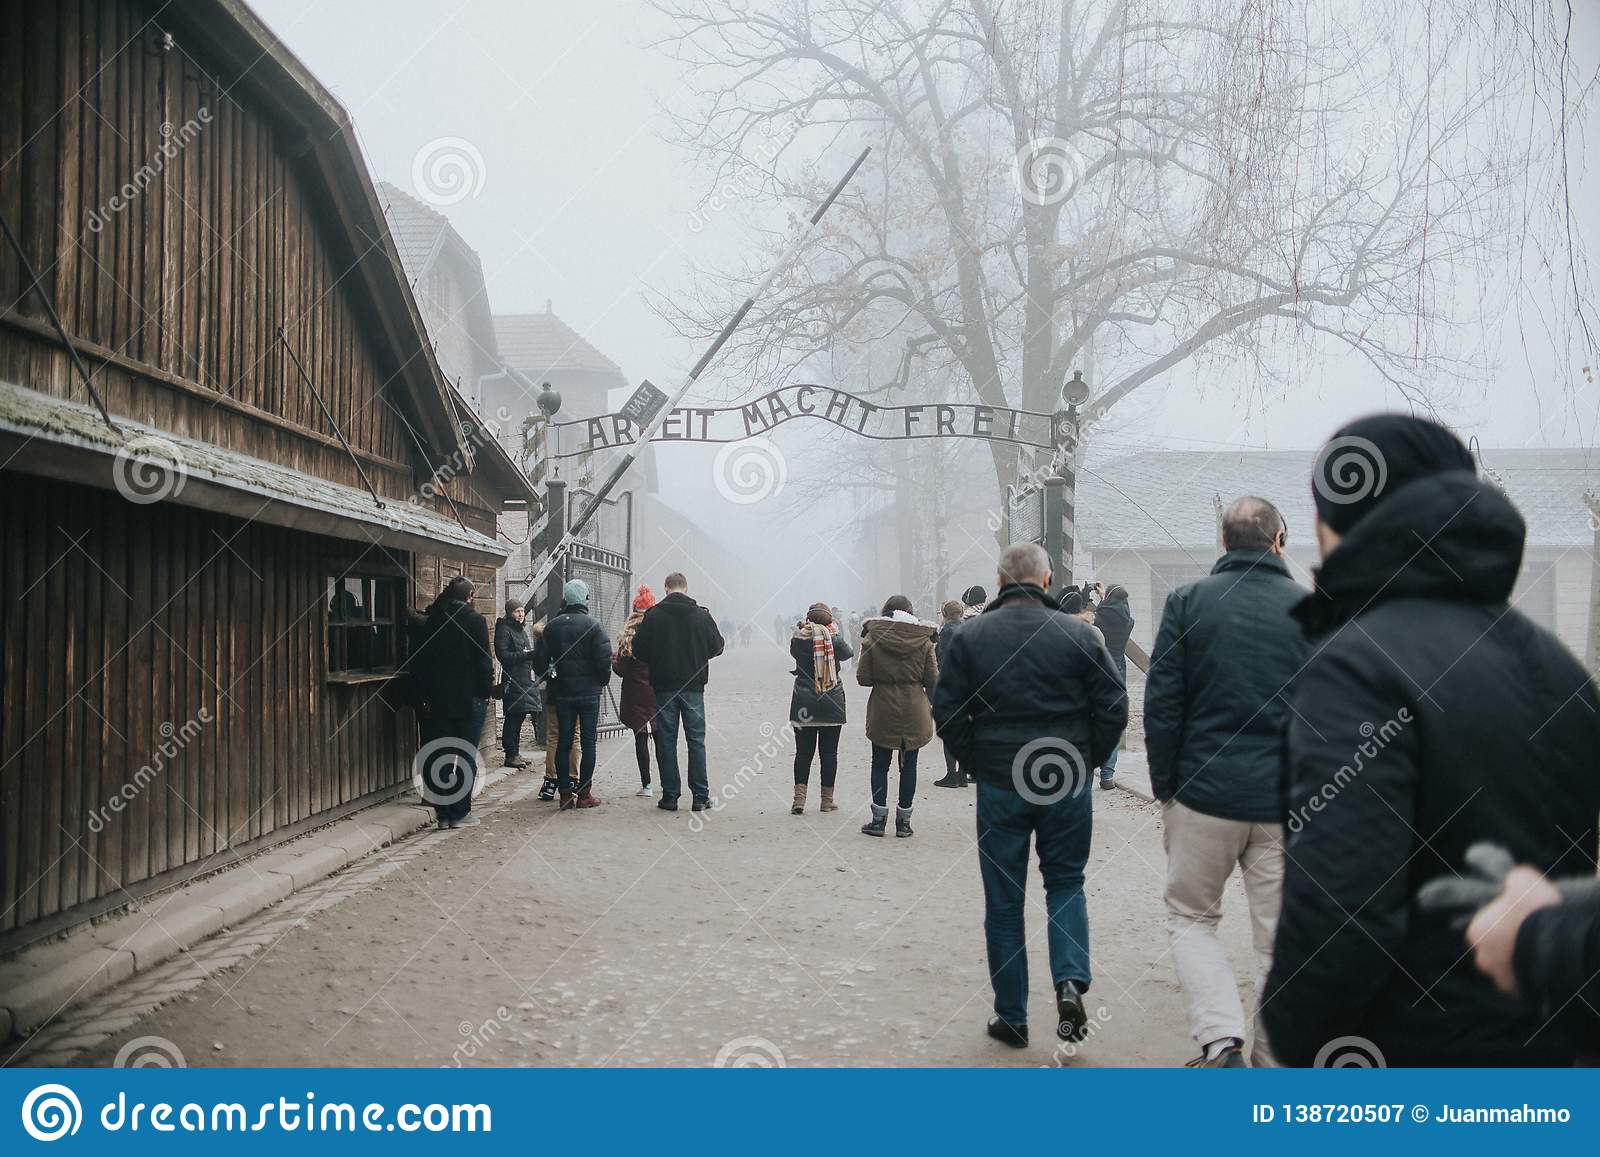 AUSCHWITZ, POLAND - DECEMBER 23, 2017: Holocaust Memorial Museum. The main gate of the concentration camp Auschwitz with the